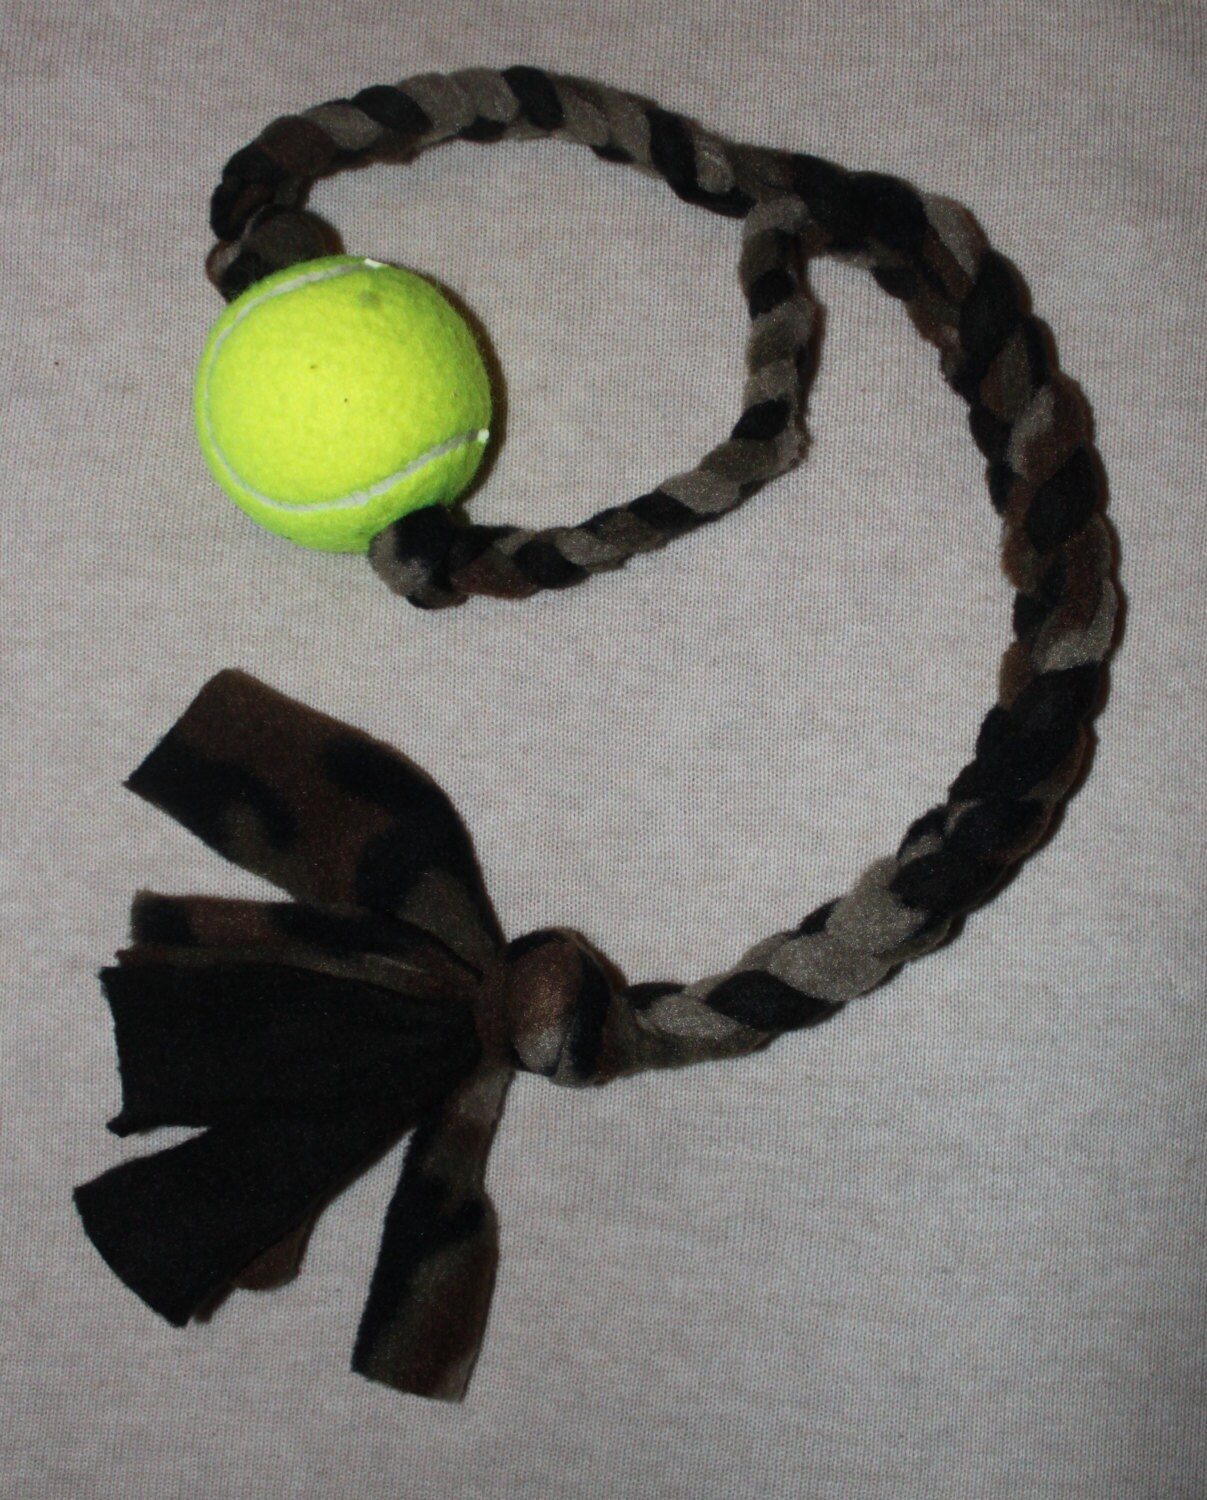 abd3ba996 Camouflage Pattern Braided Fleece Rope Pull Toy with Tennis